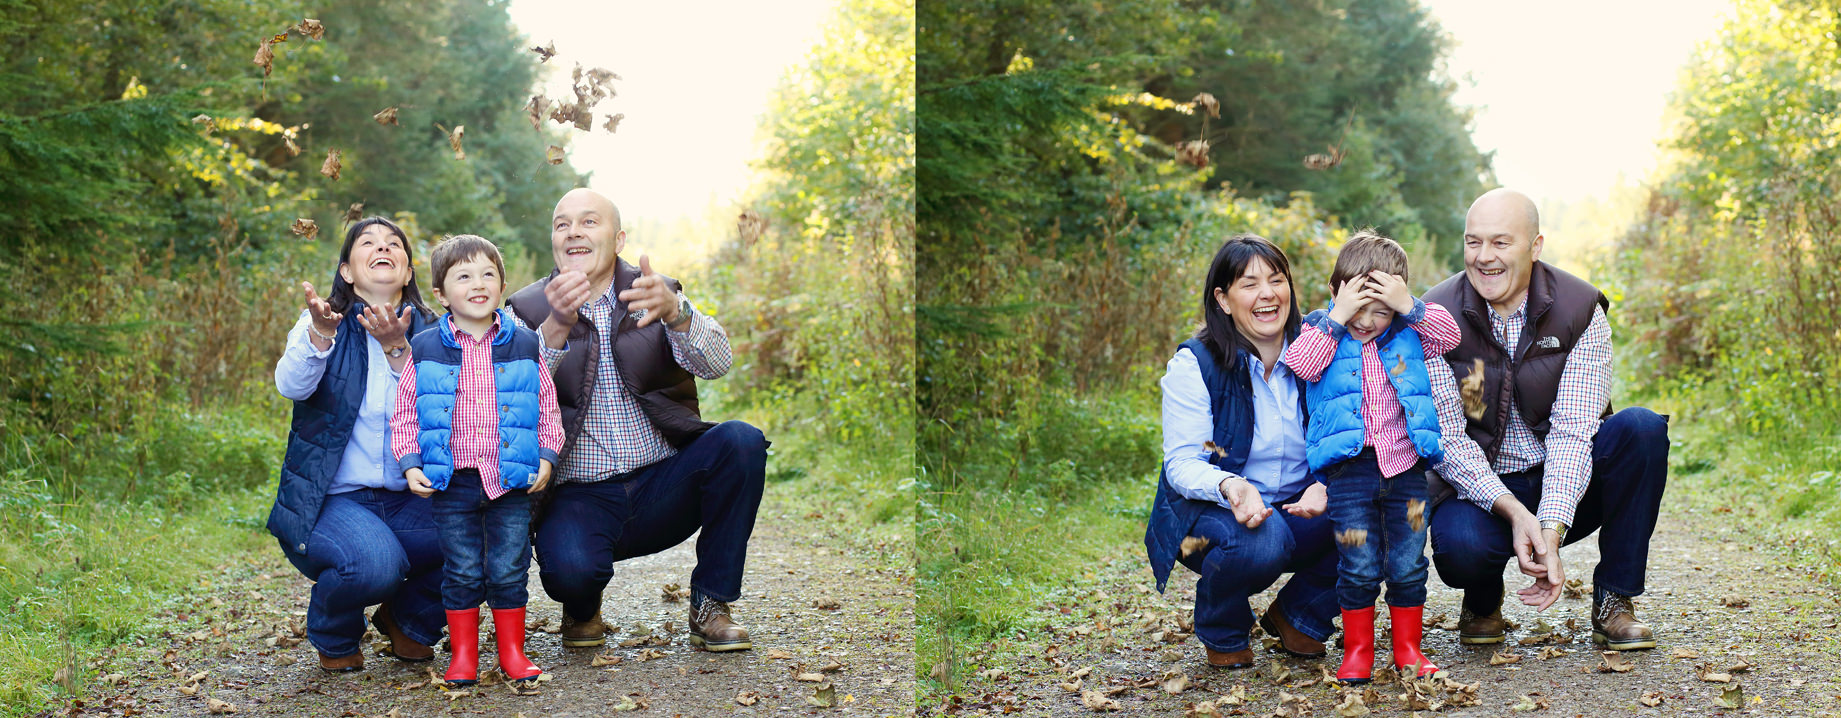 Family photo shoot in Hensol Forest South Wales